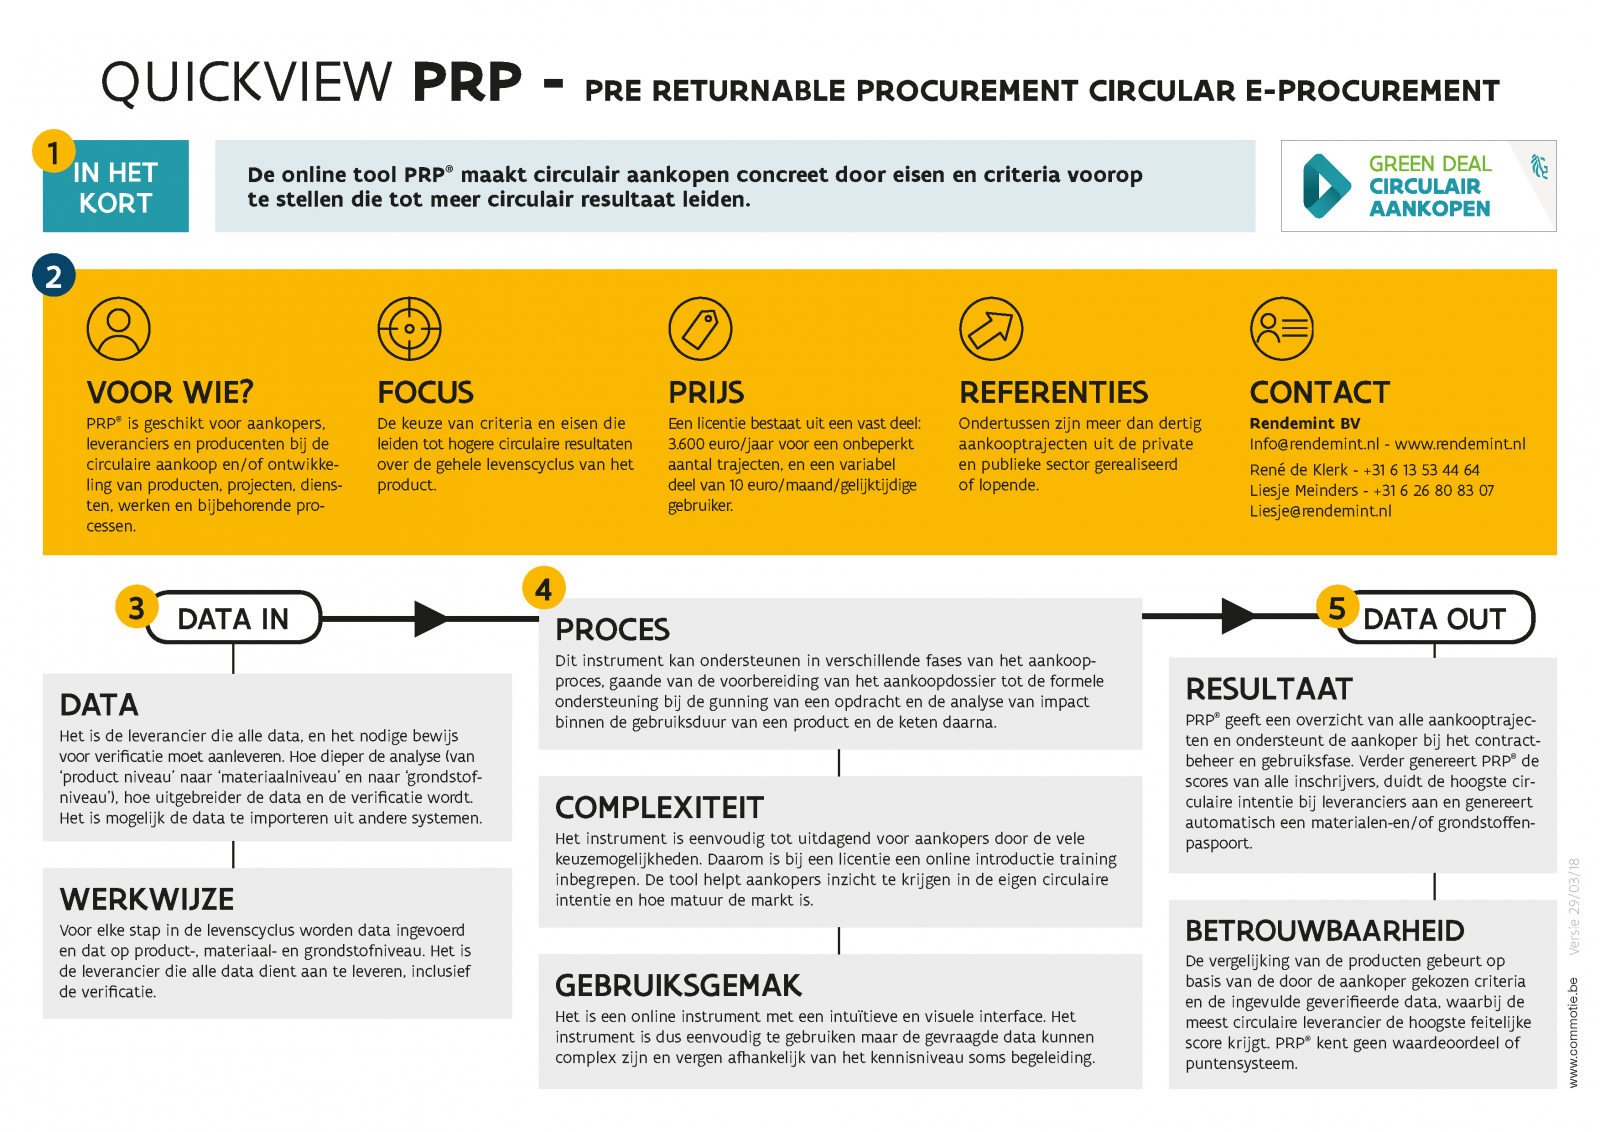 PRP - Pre Returnable Procurement Circular E-Procurement